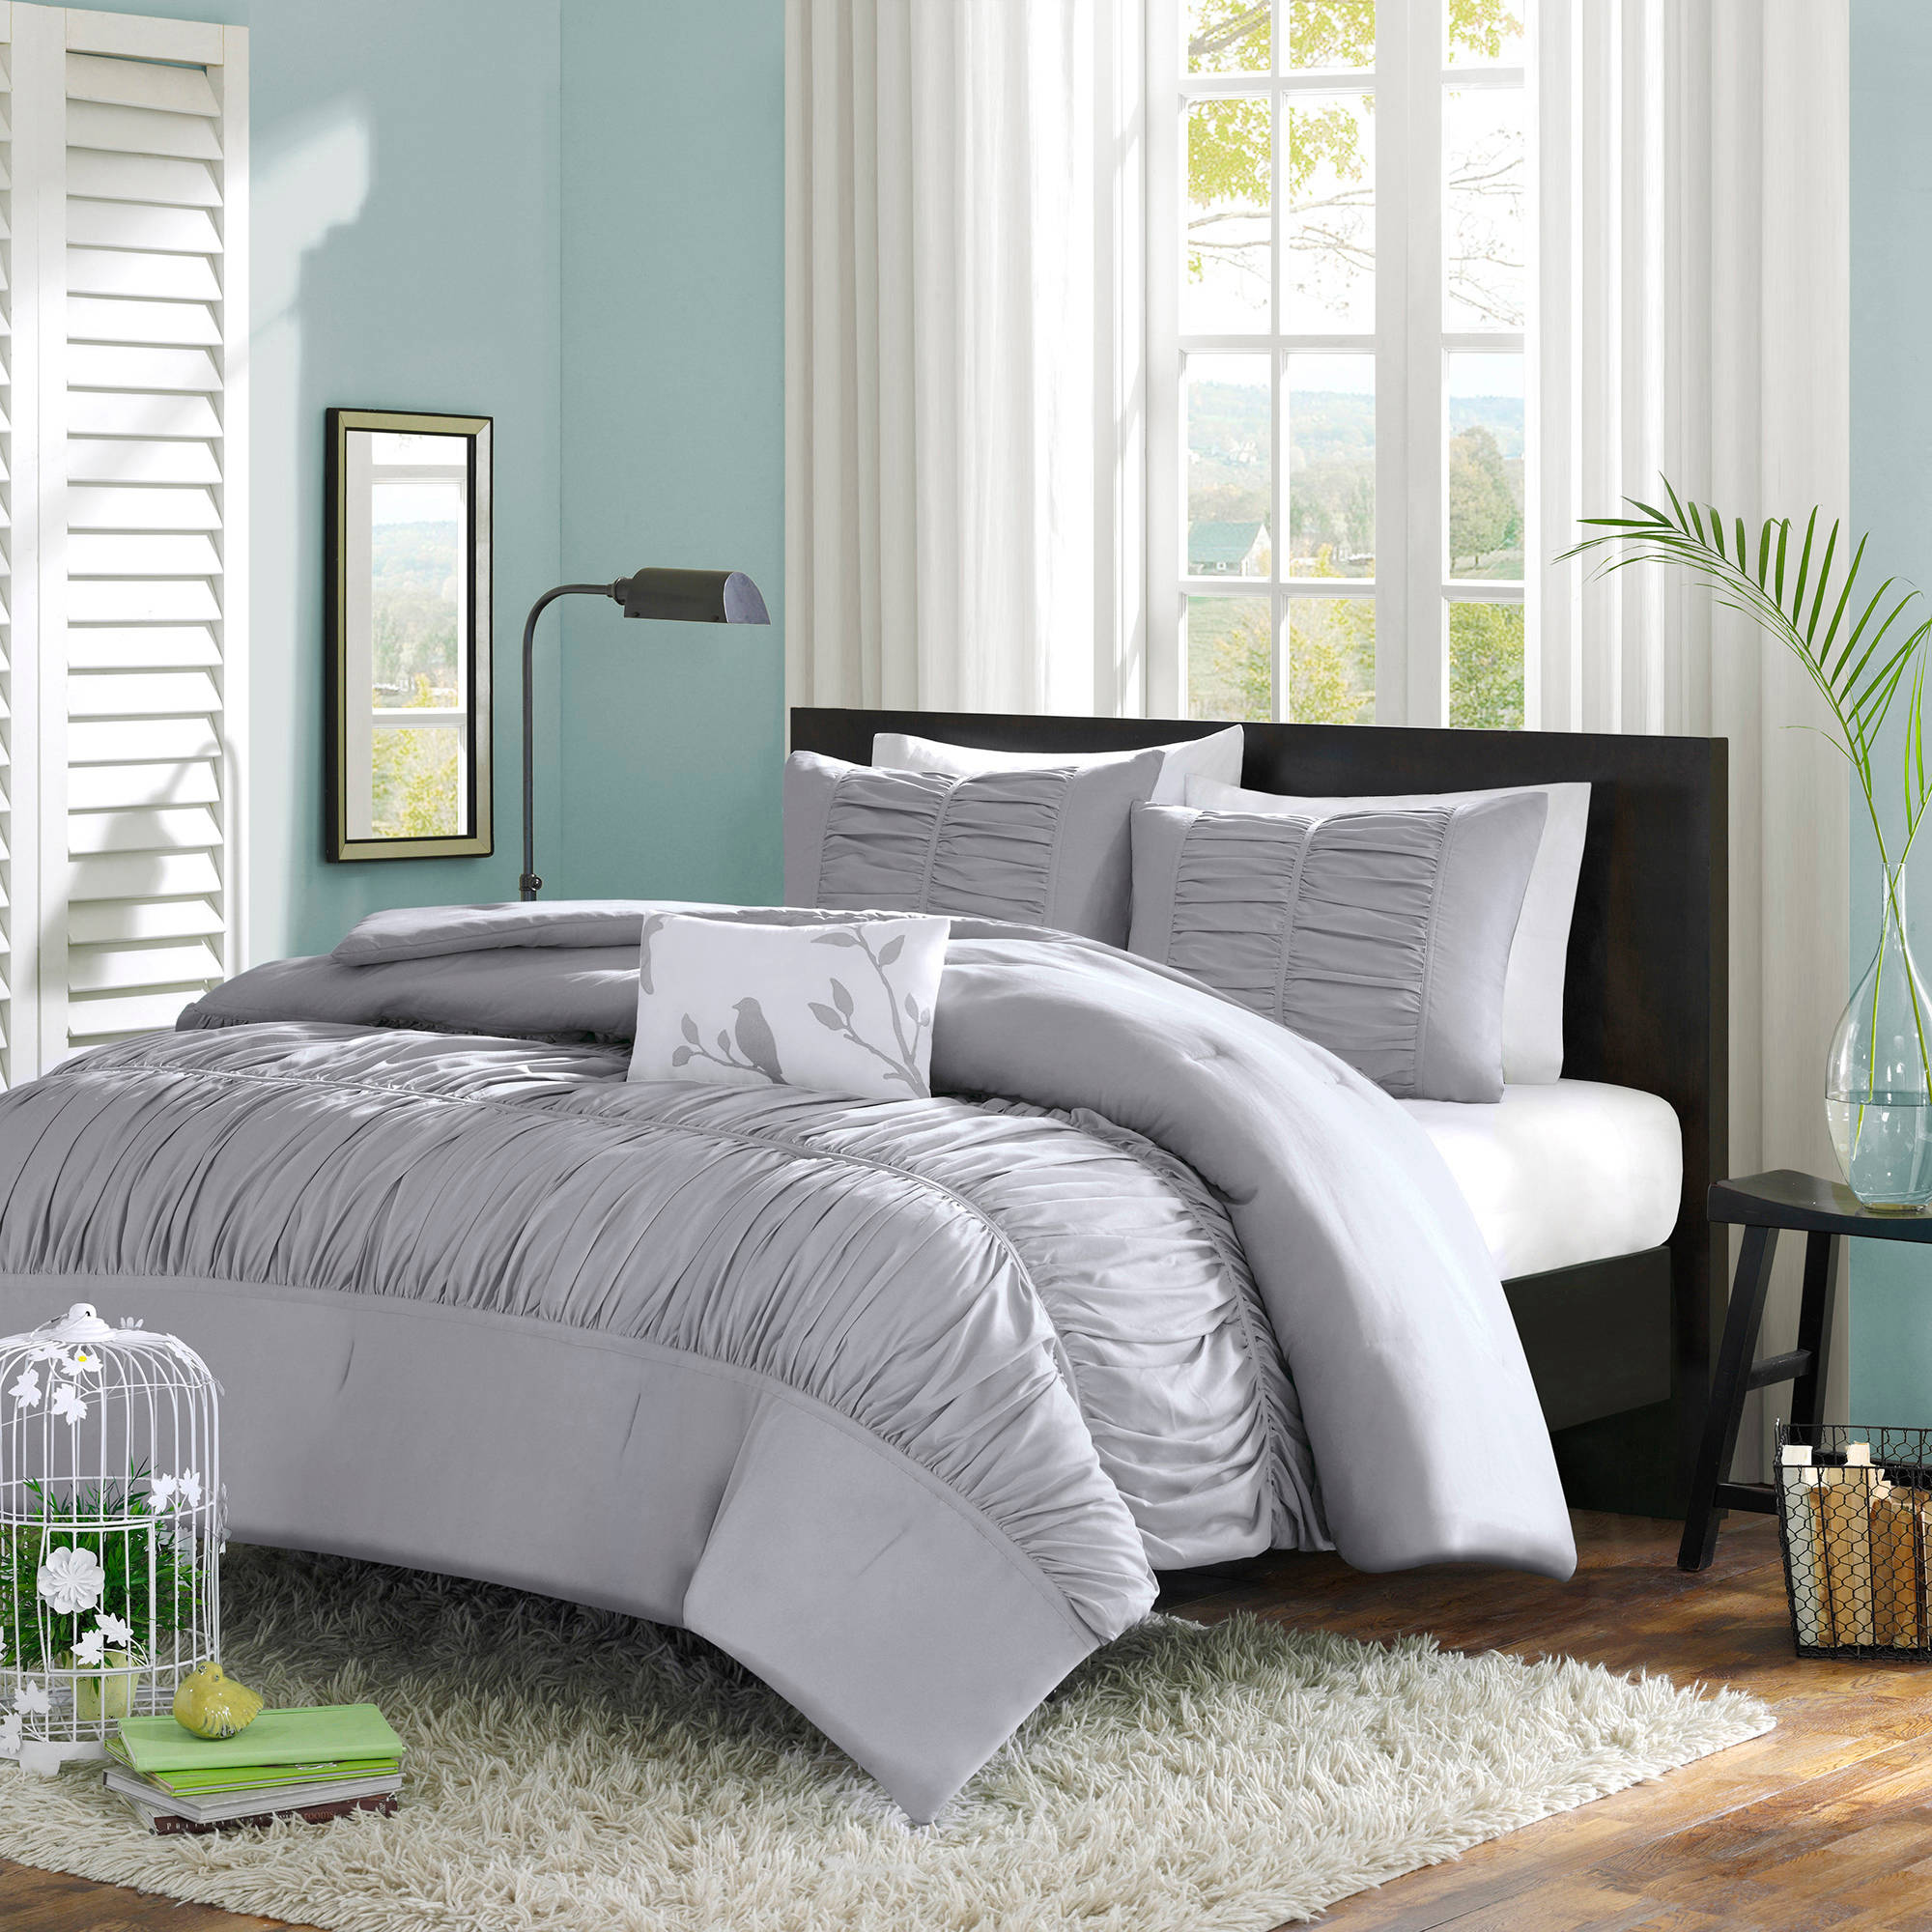 Home Essence Apartment Haley Comforter Set